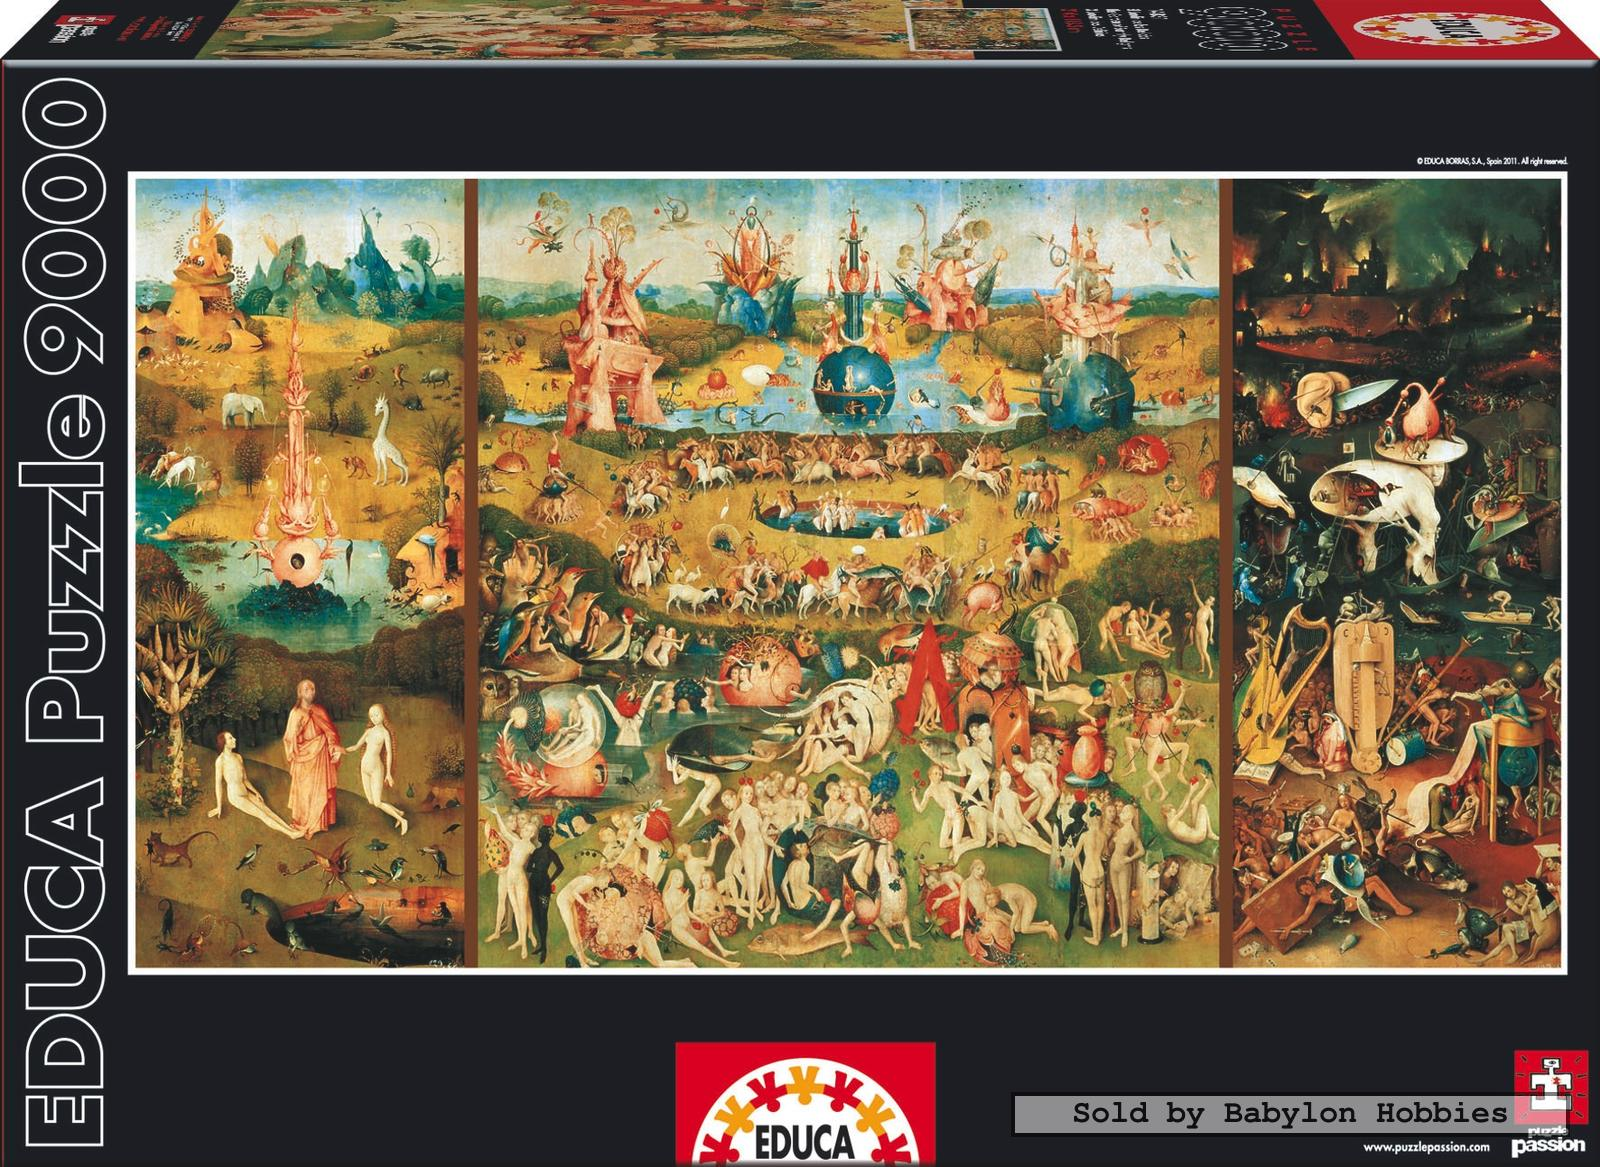 9000 Pcs Jigsaw Puzzle Bosch The Garden Of Earthly